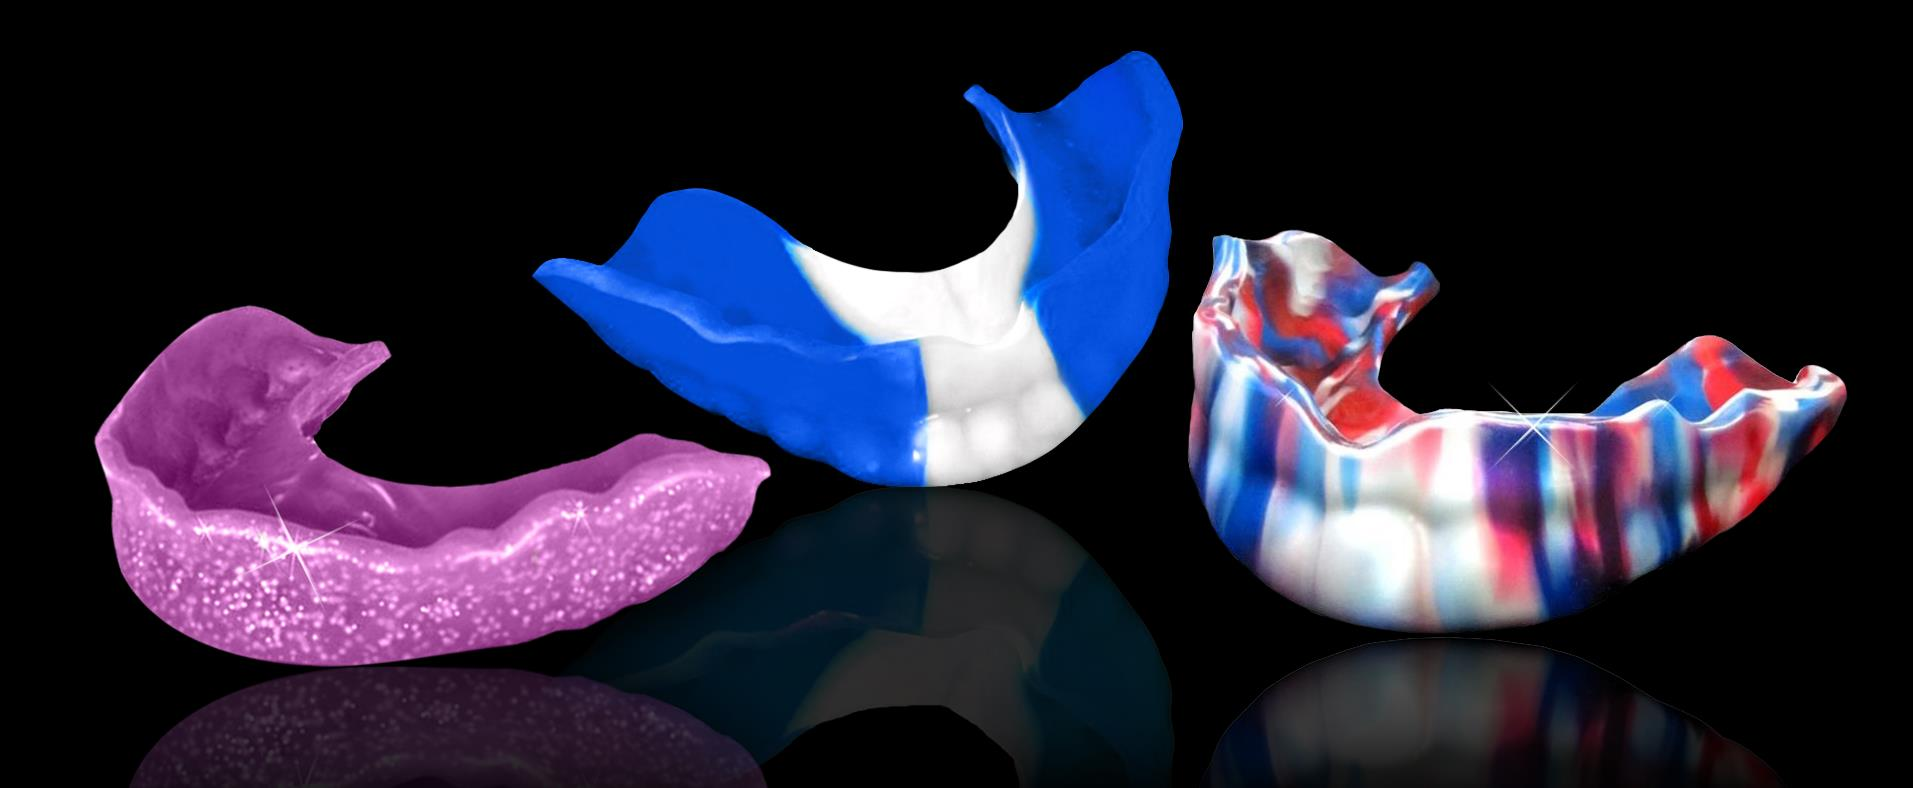 Proform Sports Mouthguards - grande prairie family dental